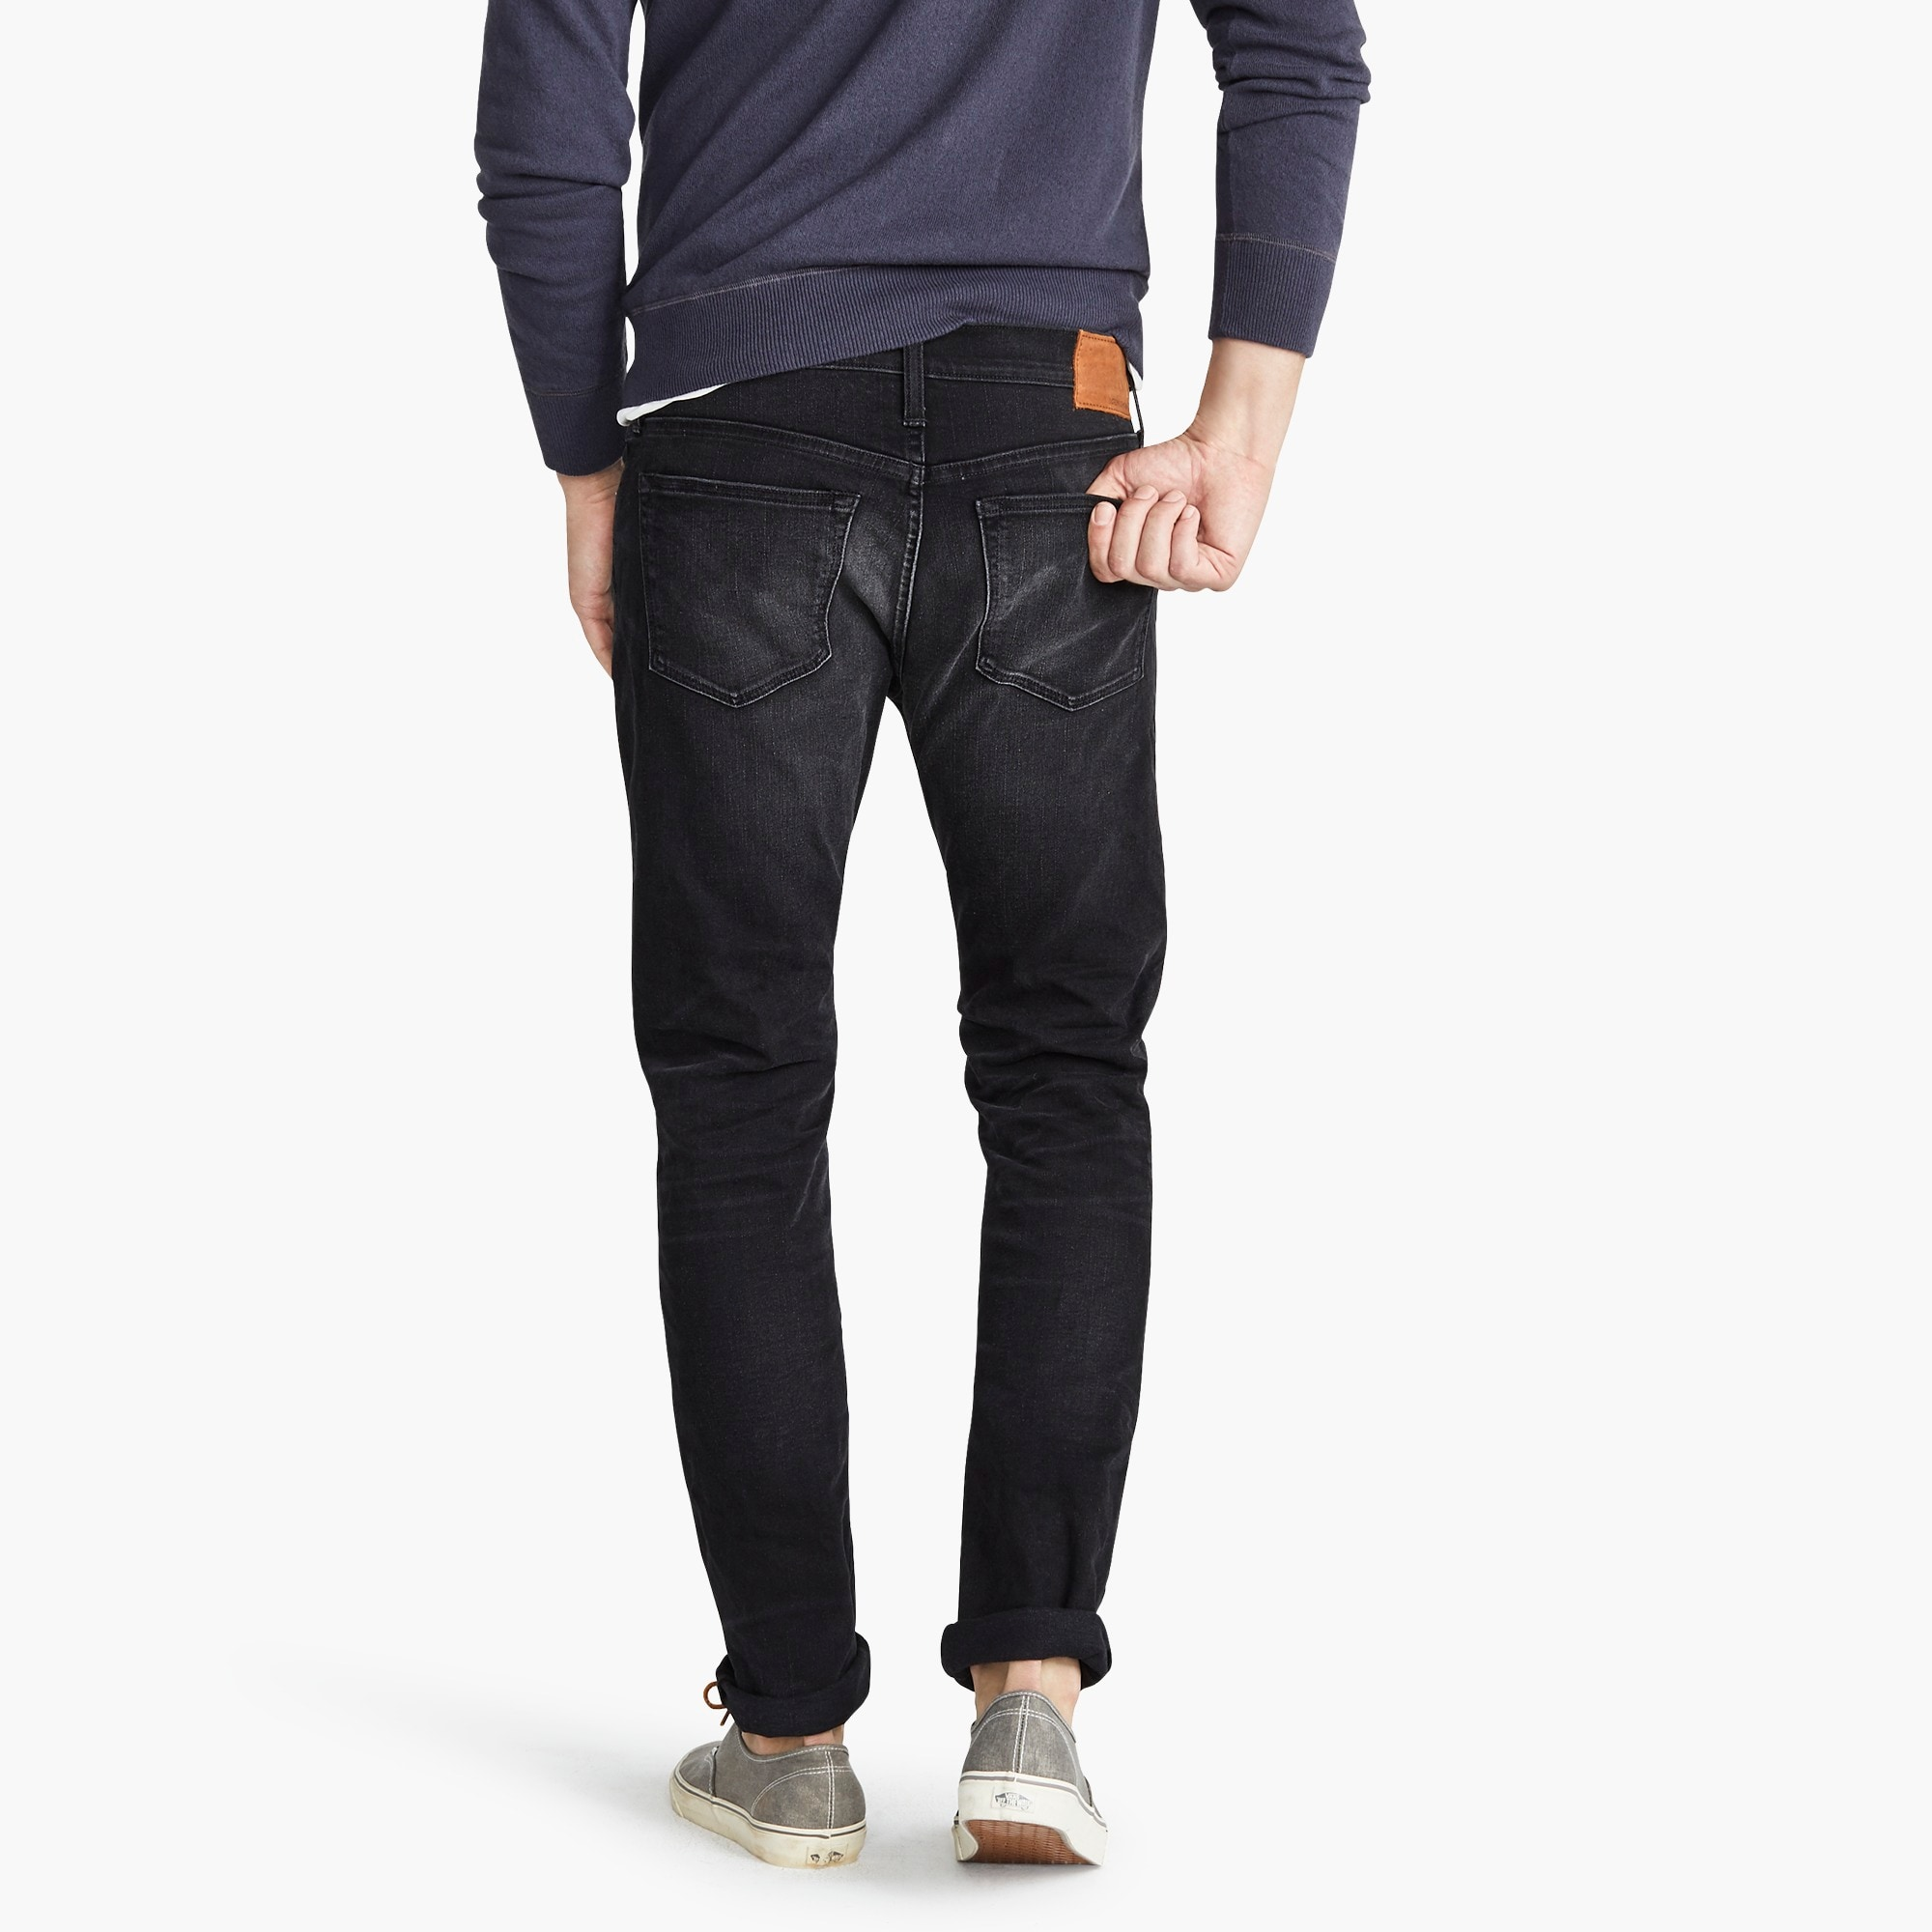 484 Slim-fit stretch jean in washed black